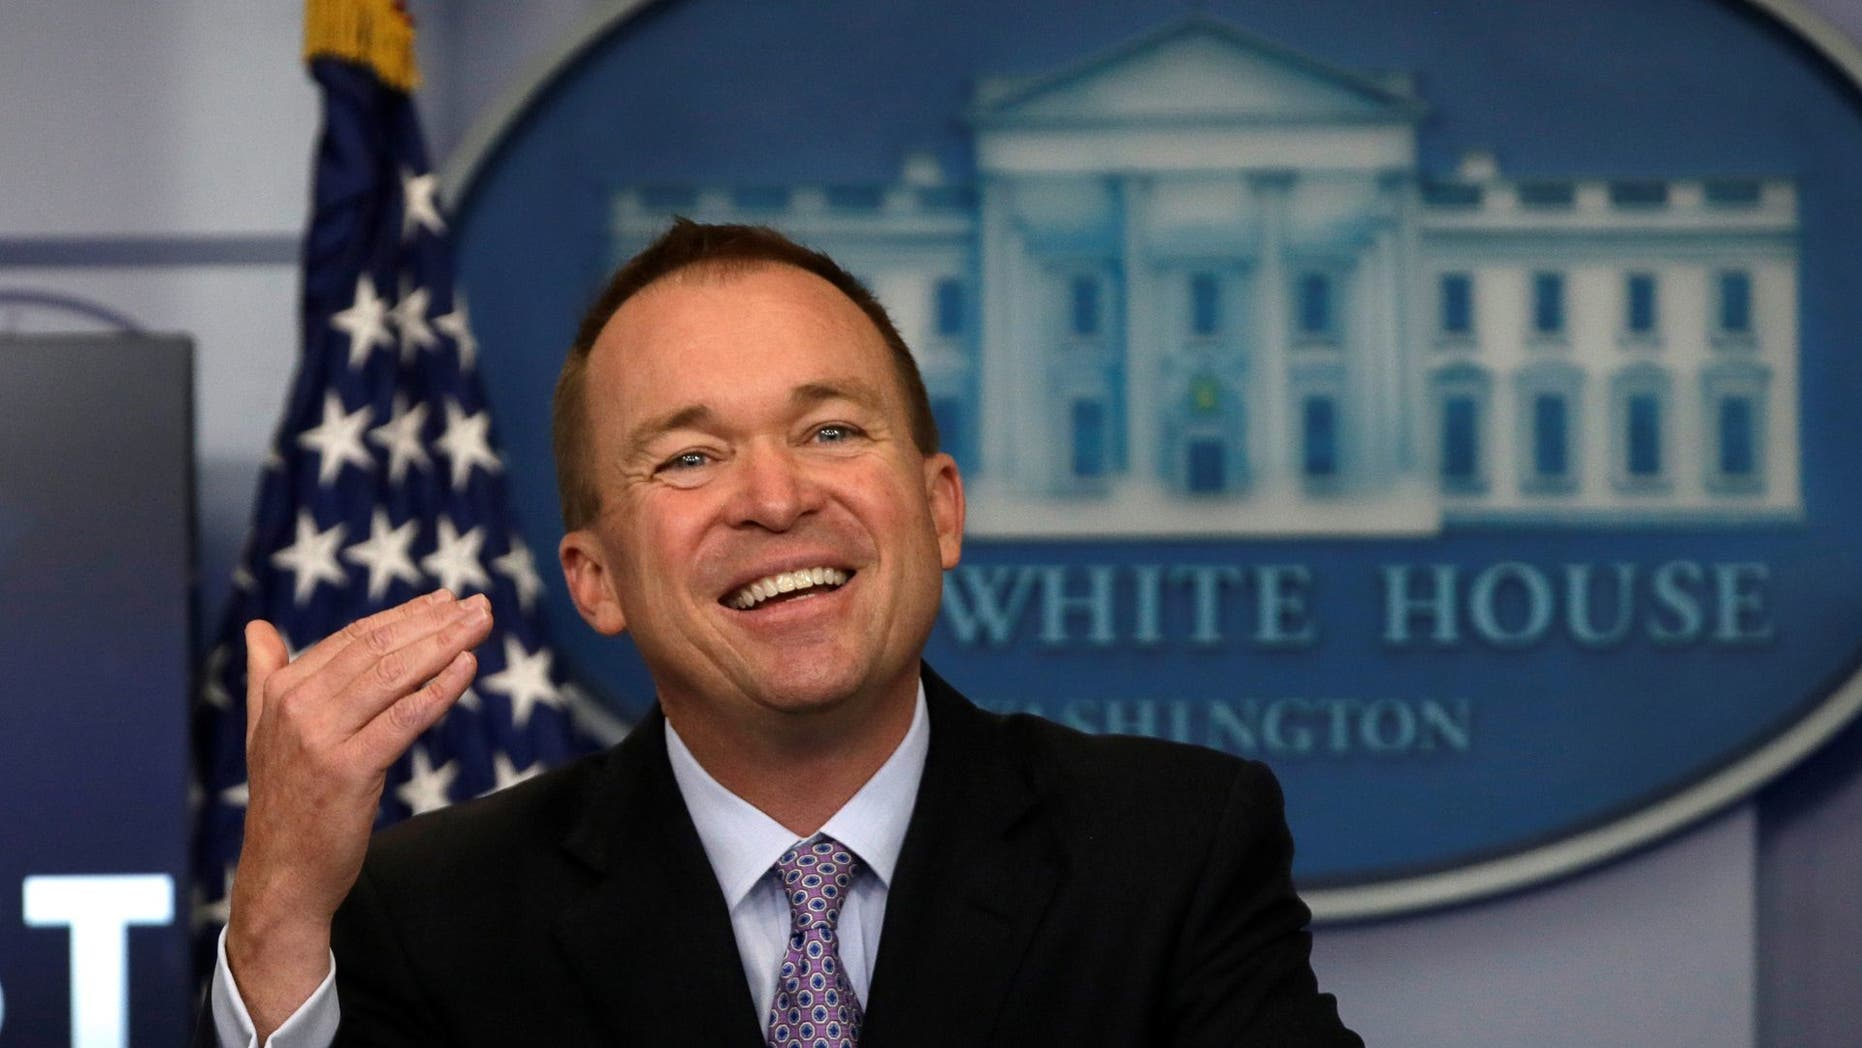 Mick Mulvaney was just tapped to be Trump's next chief of staff.